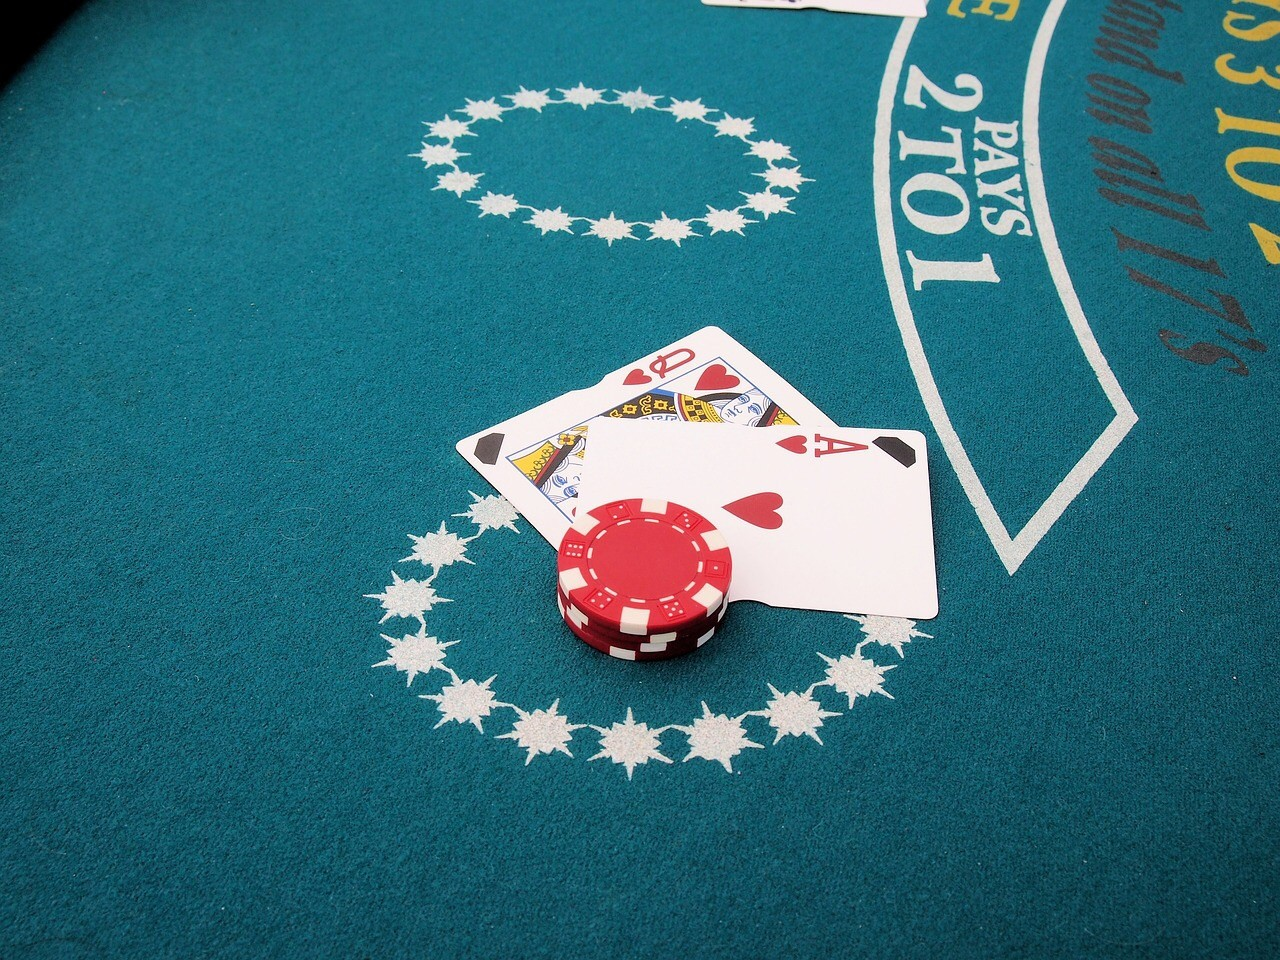 Controversial Article And Find Out More About Online Gambling